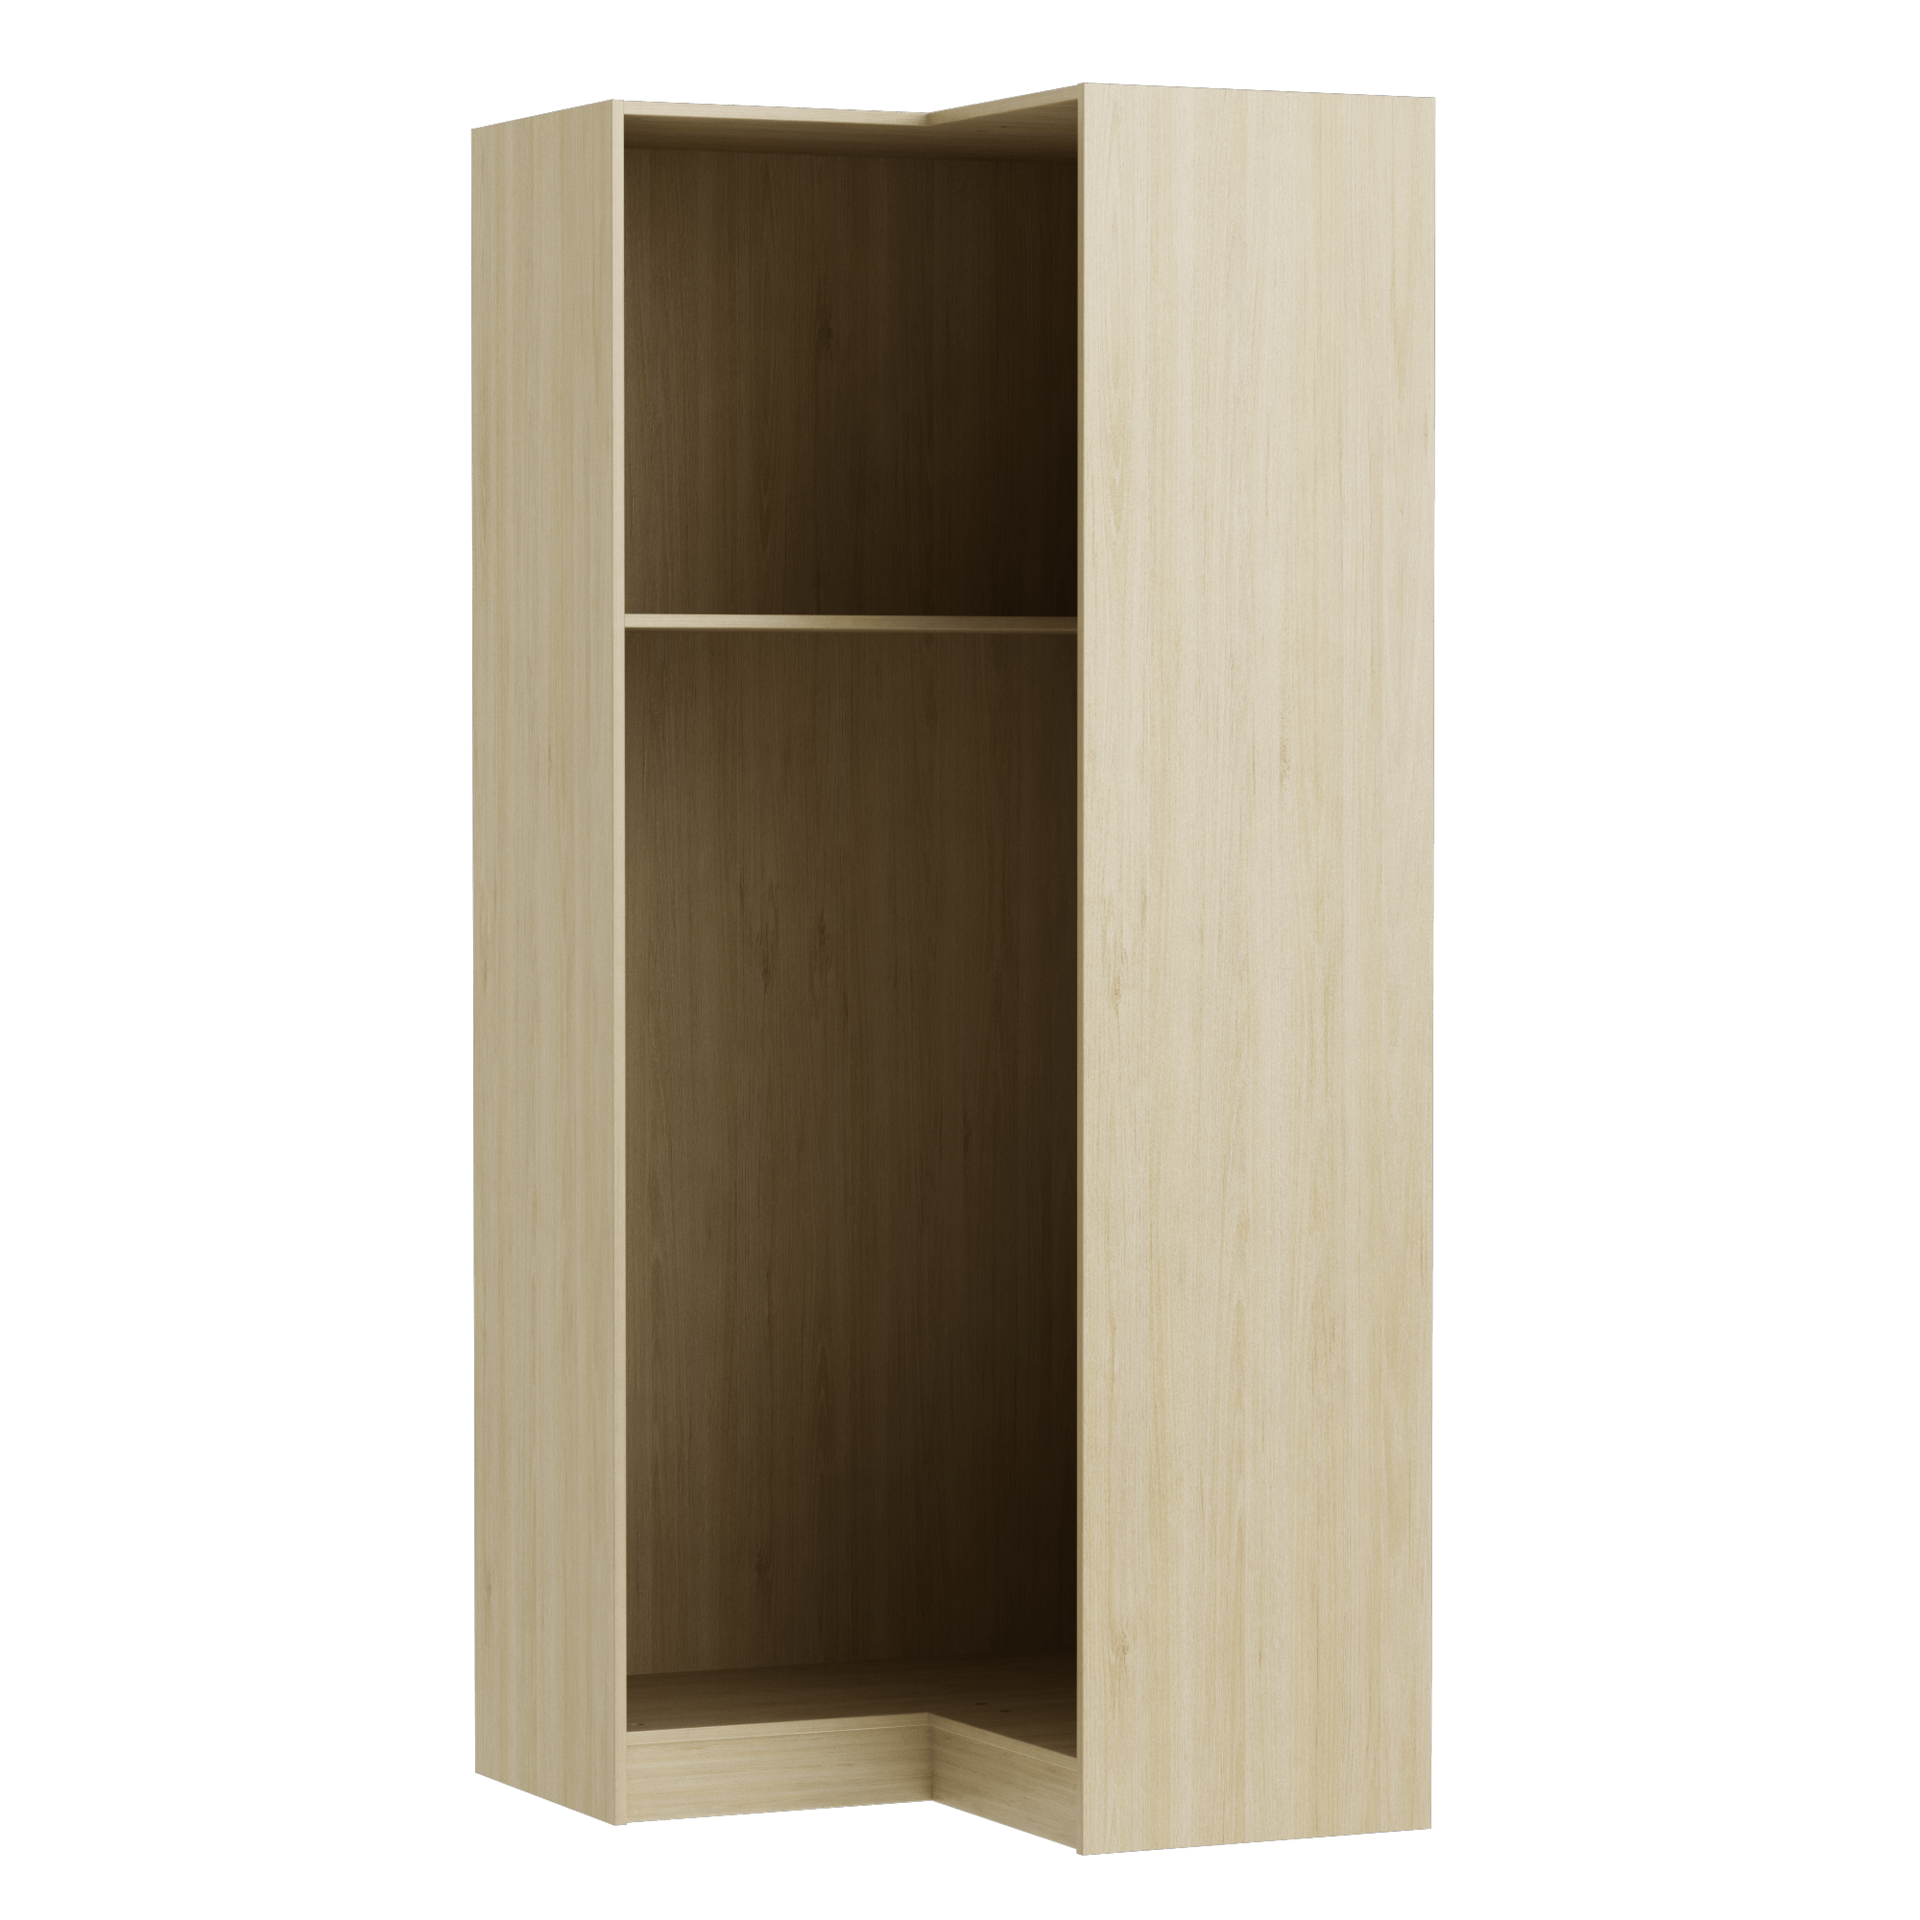 Dressing D Angle Spaceo Home Effet Chene Naturel H 200 X L 87 X P 45 Cm Leroy Merlin